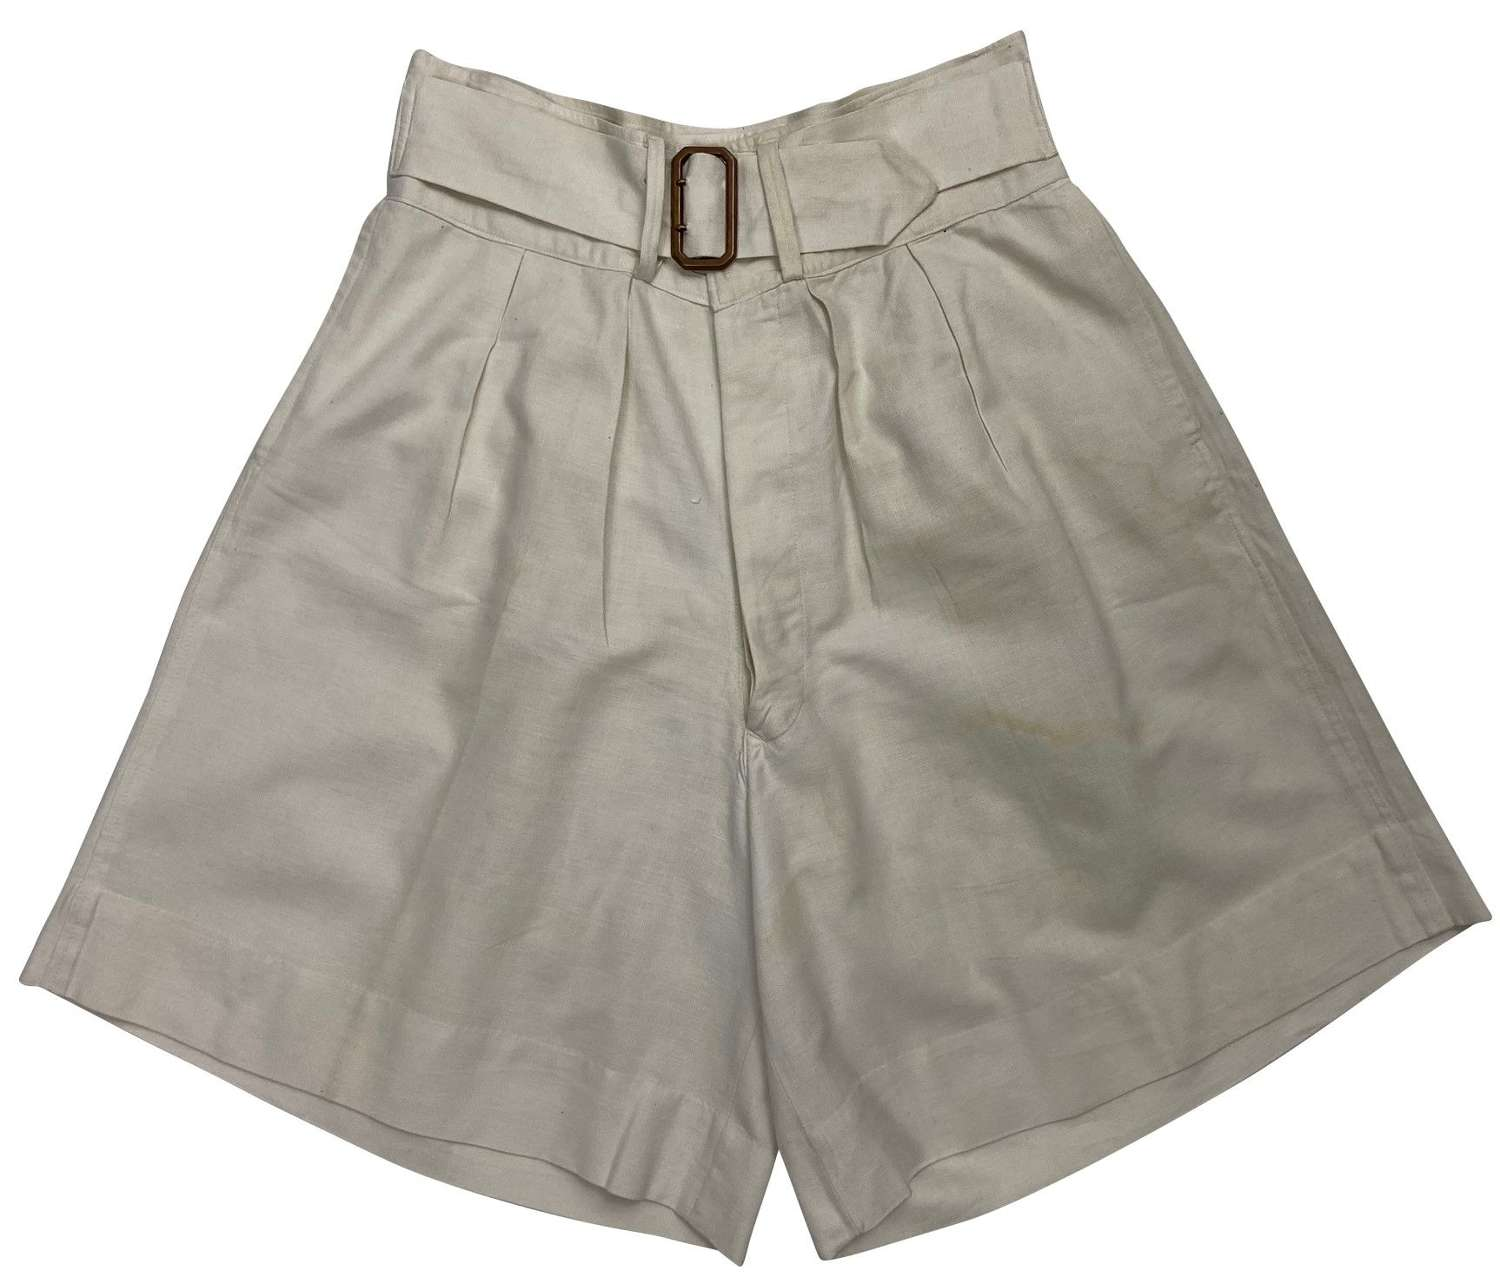 Original 1940s Royal Navy White Drill Shorts with Brass Waist Buckle